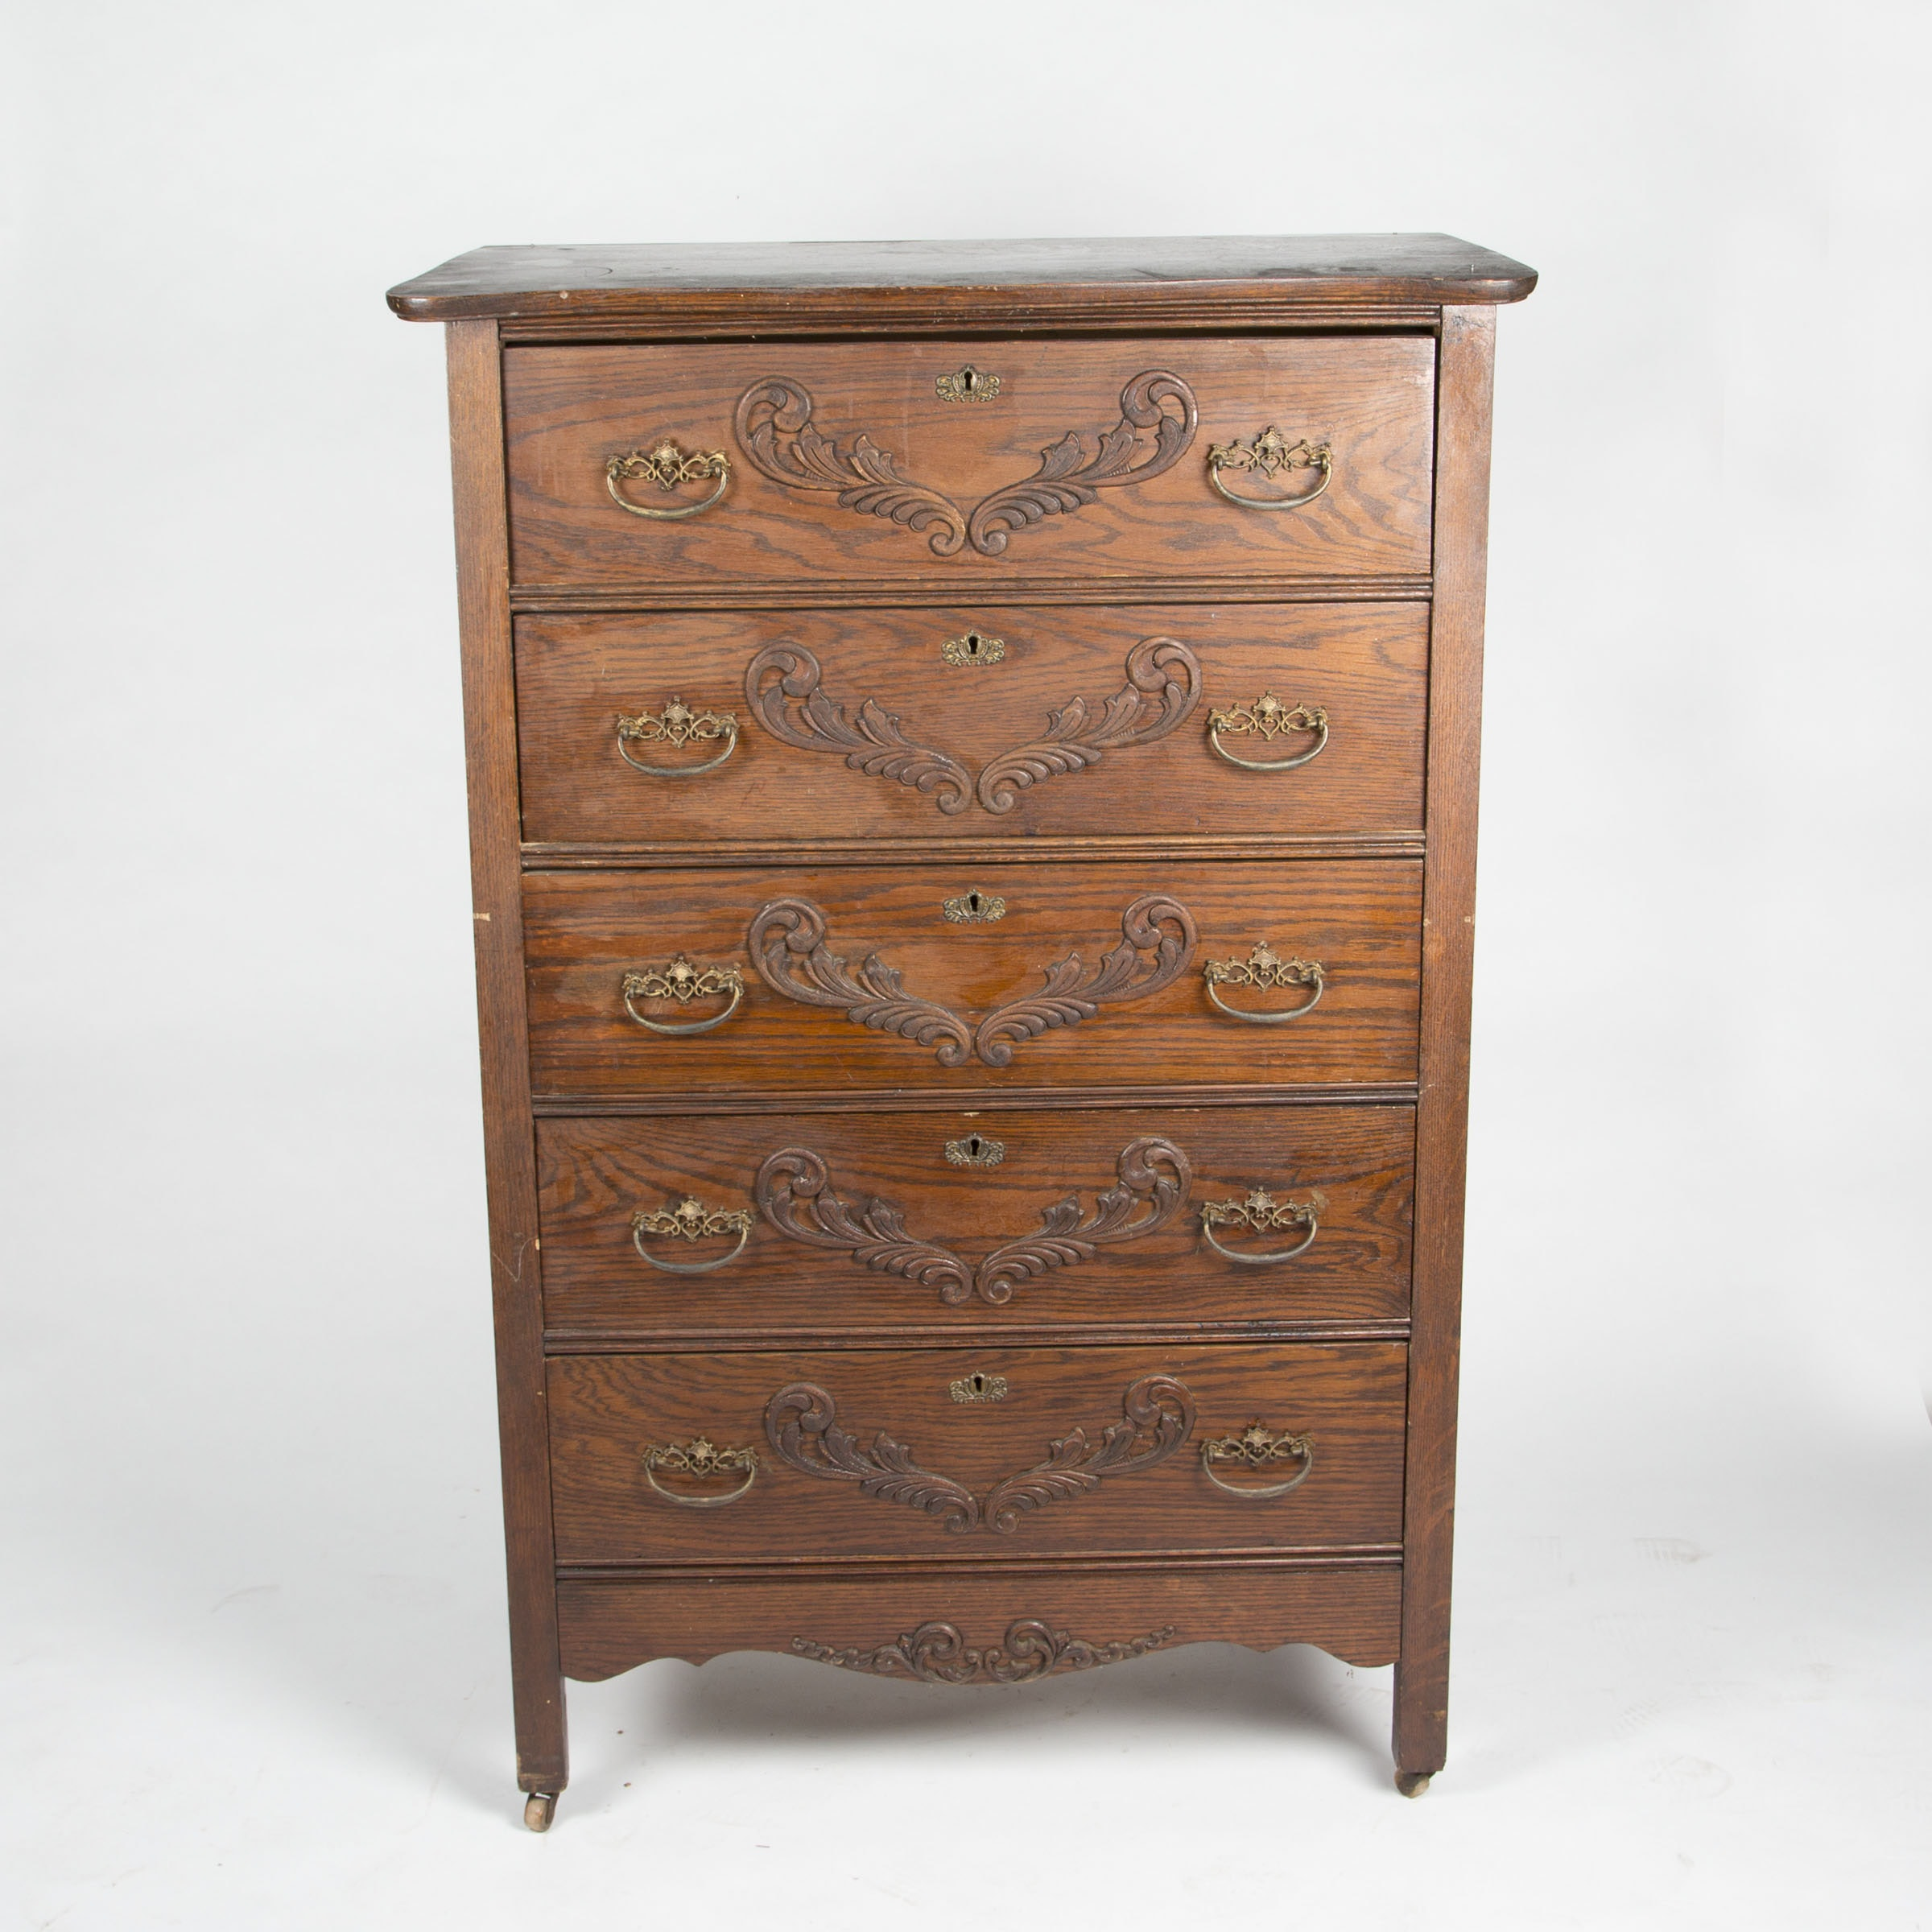 Antique Chest of Drawers by Asa Van-Kleeck